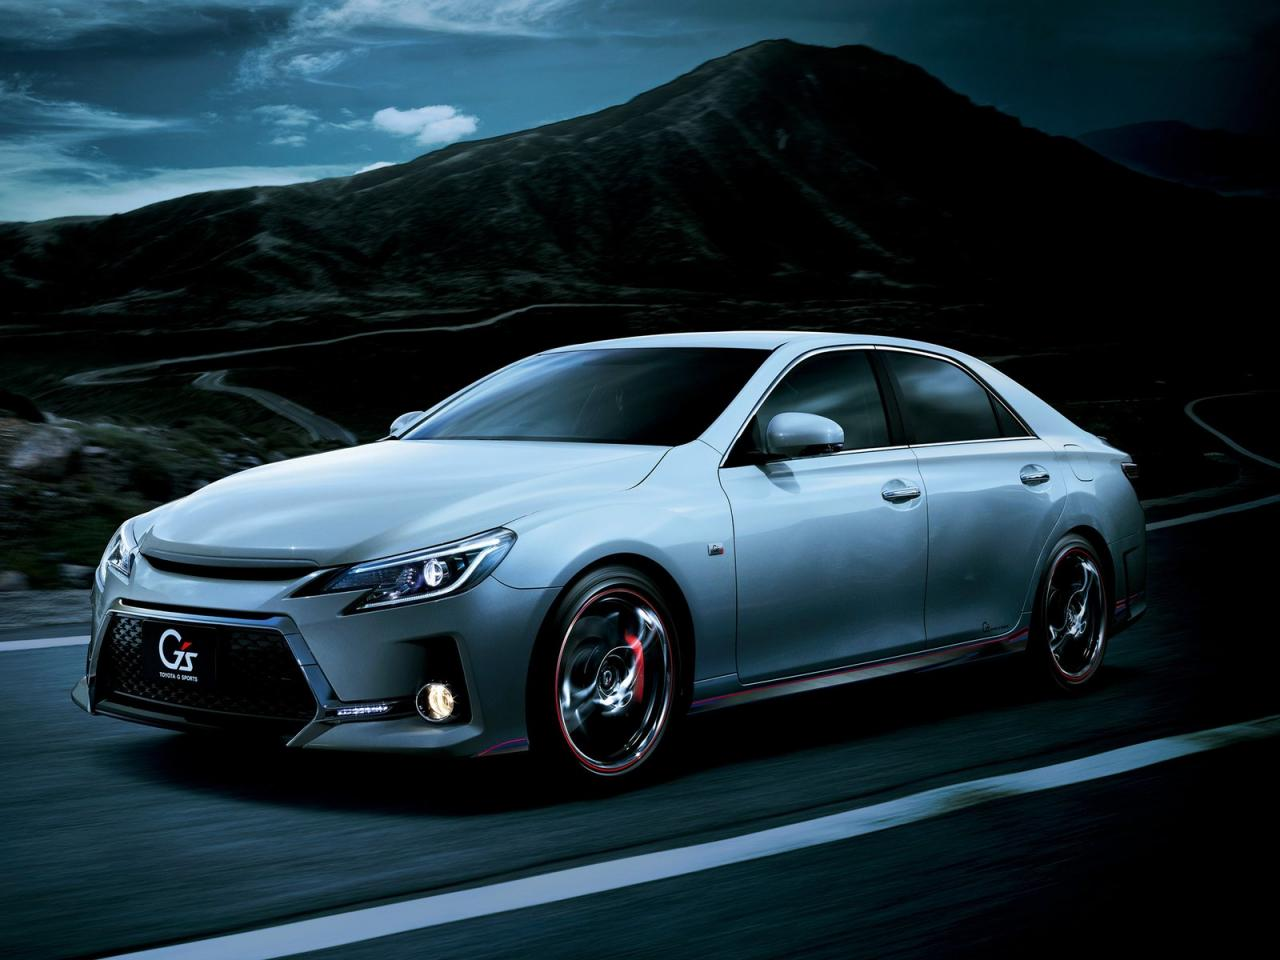 The corolla can be towed either for short distances or long distances, p. 2013 Toyota Mark X Facelift - Japan-Only - autoevolution